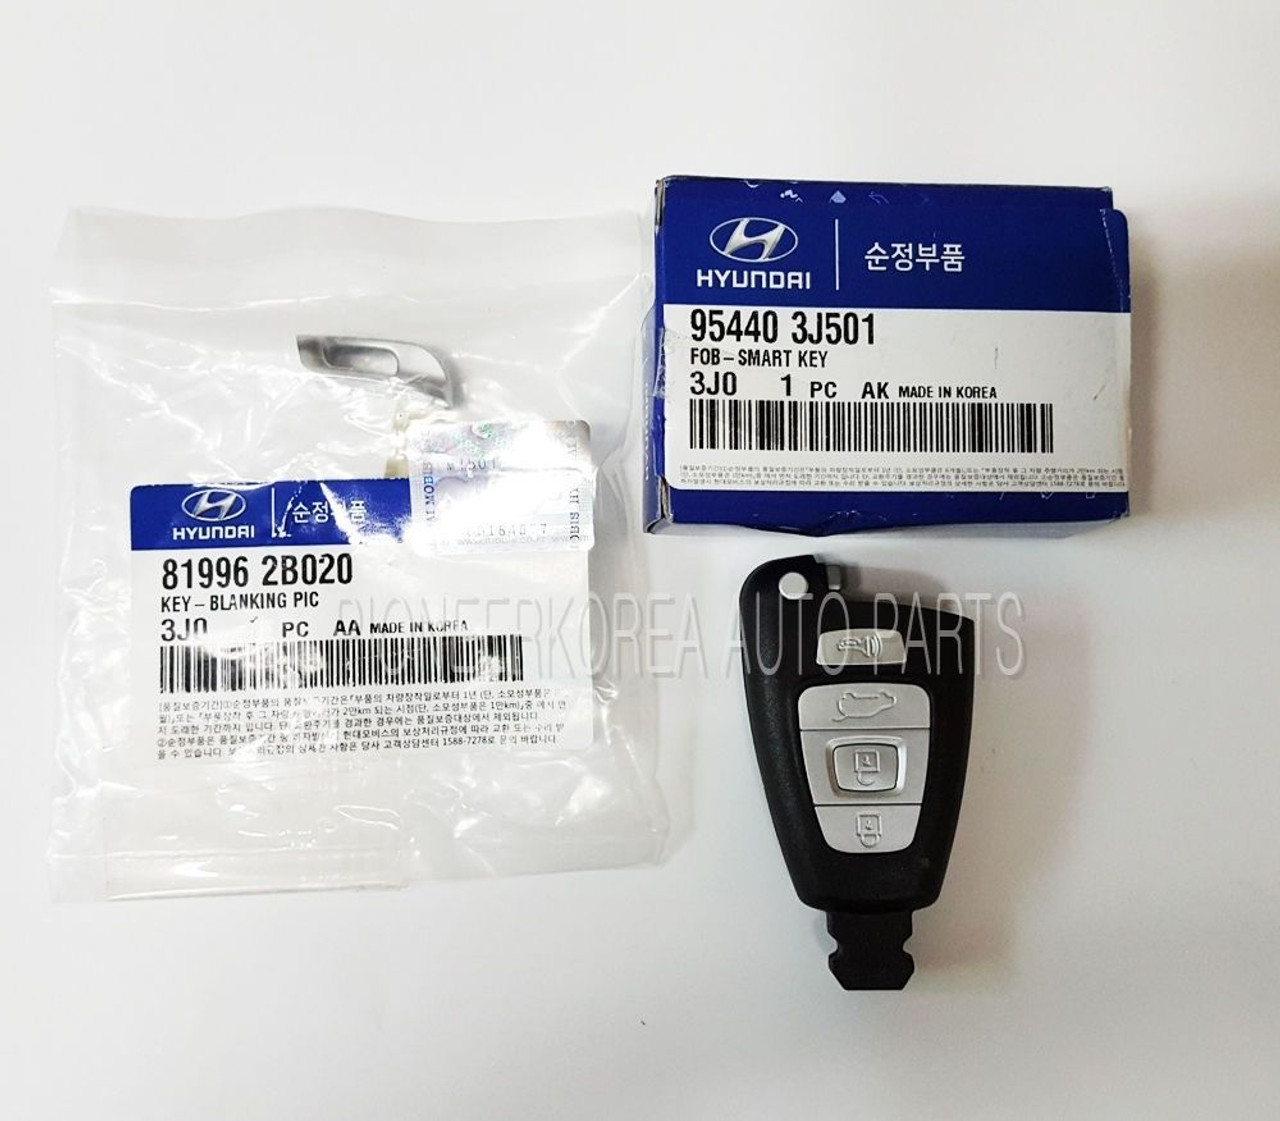 Keyless entry smart key fob 954403j501 with blanking for hyundai veracruz ix55